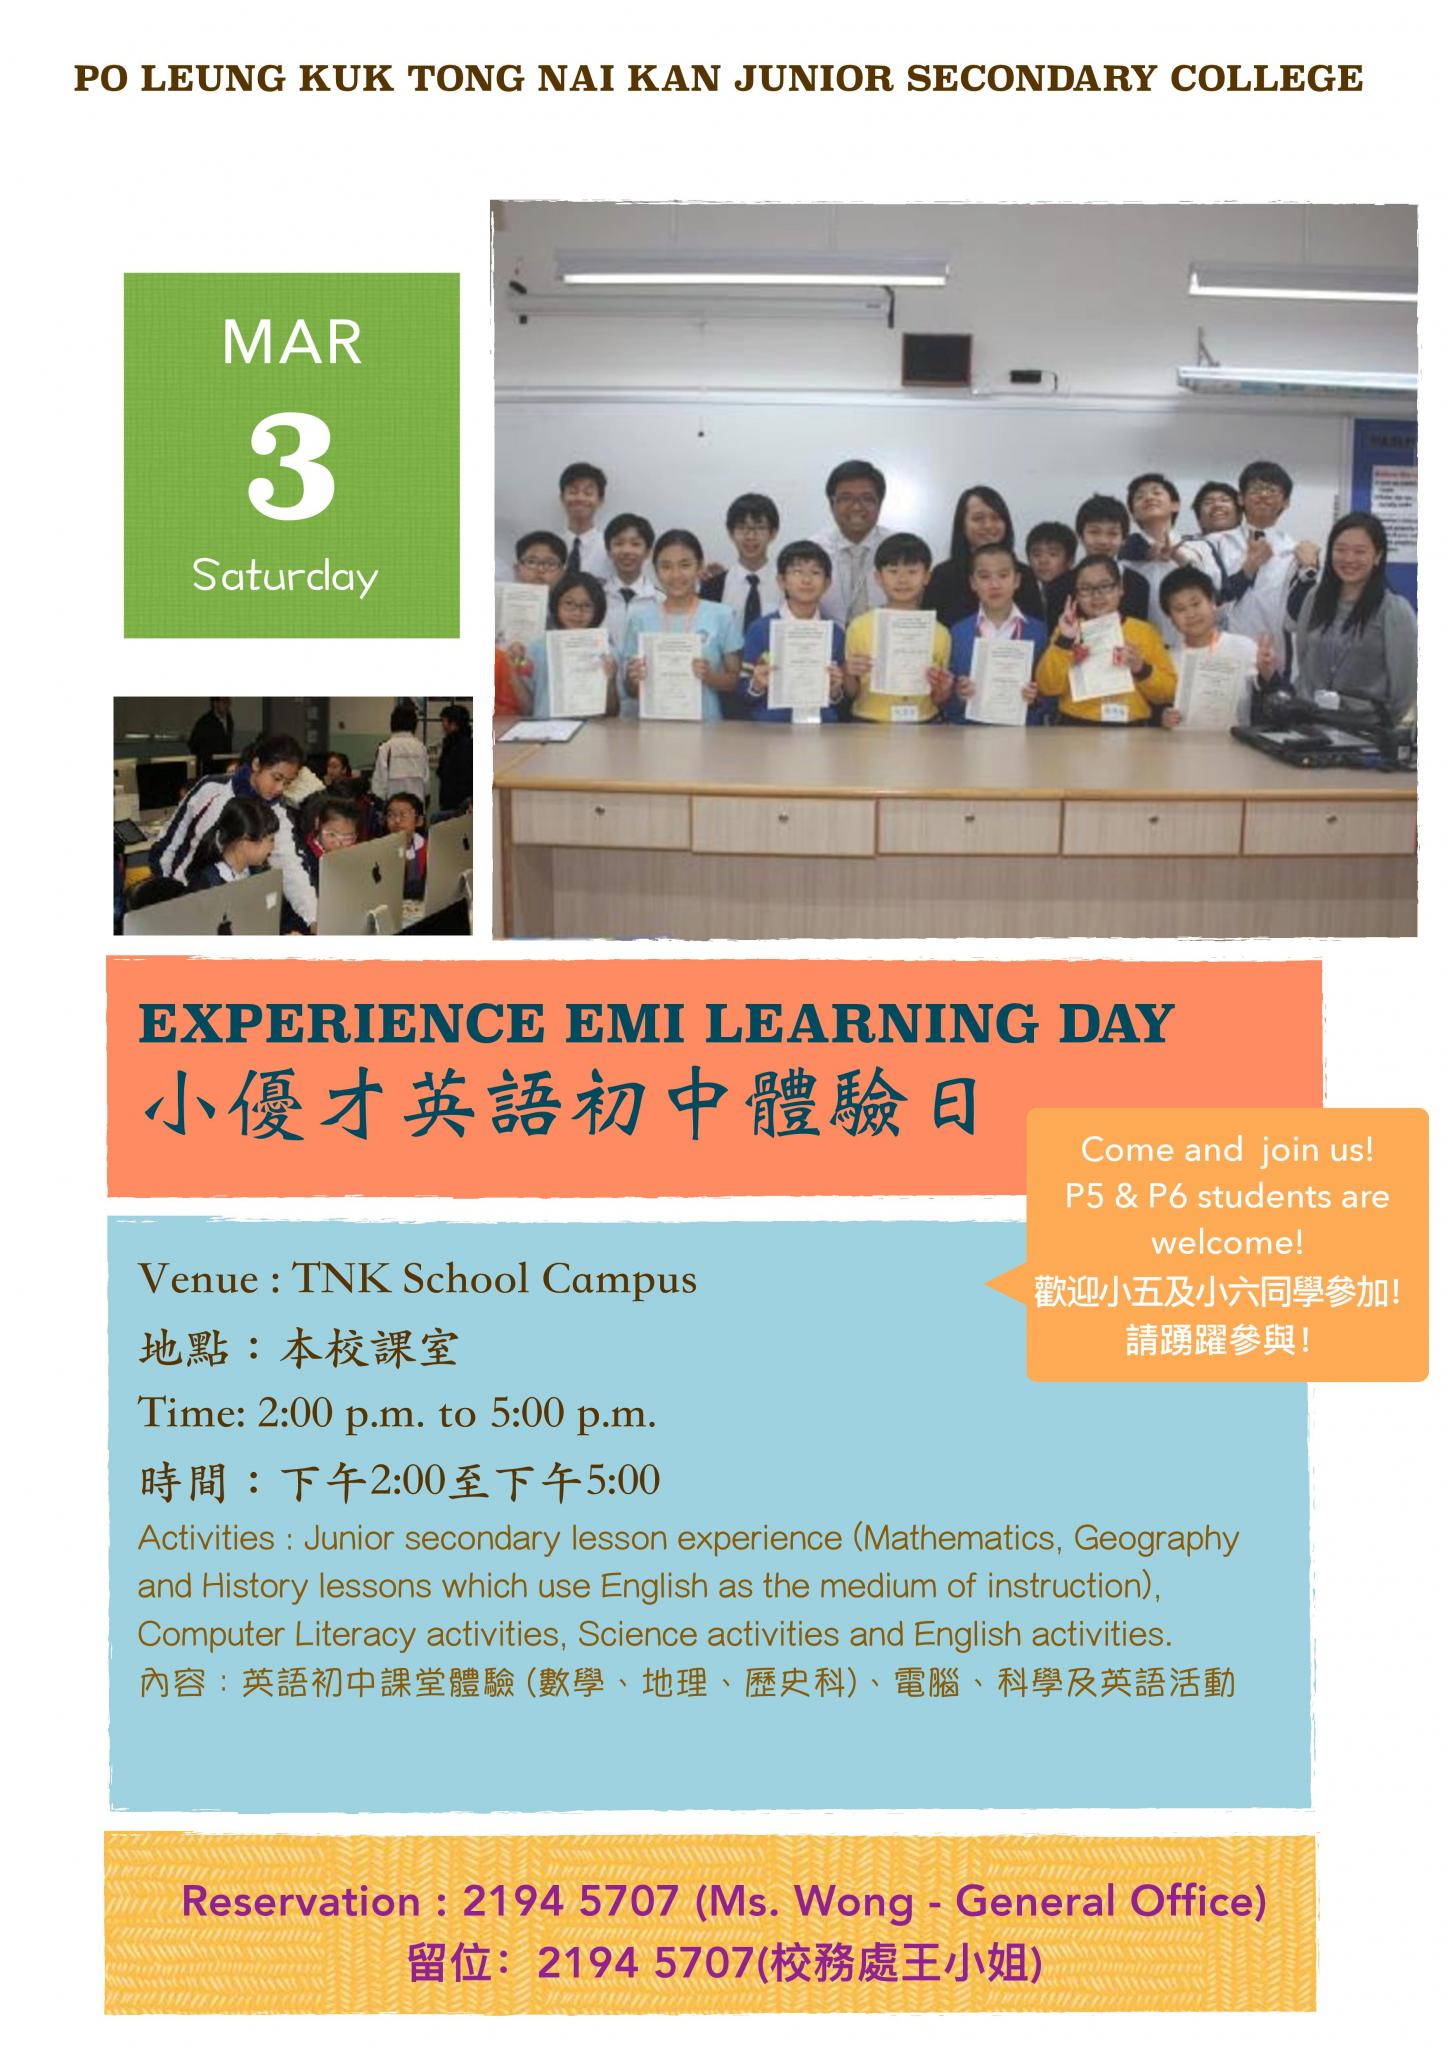 Experience EMI Learning Day